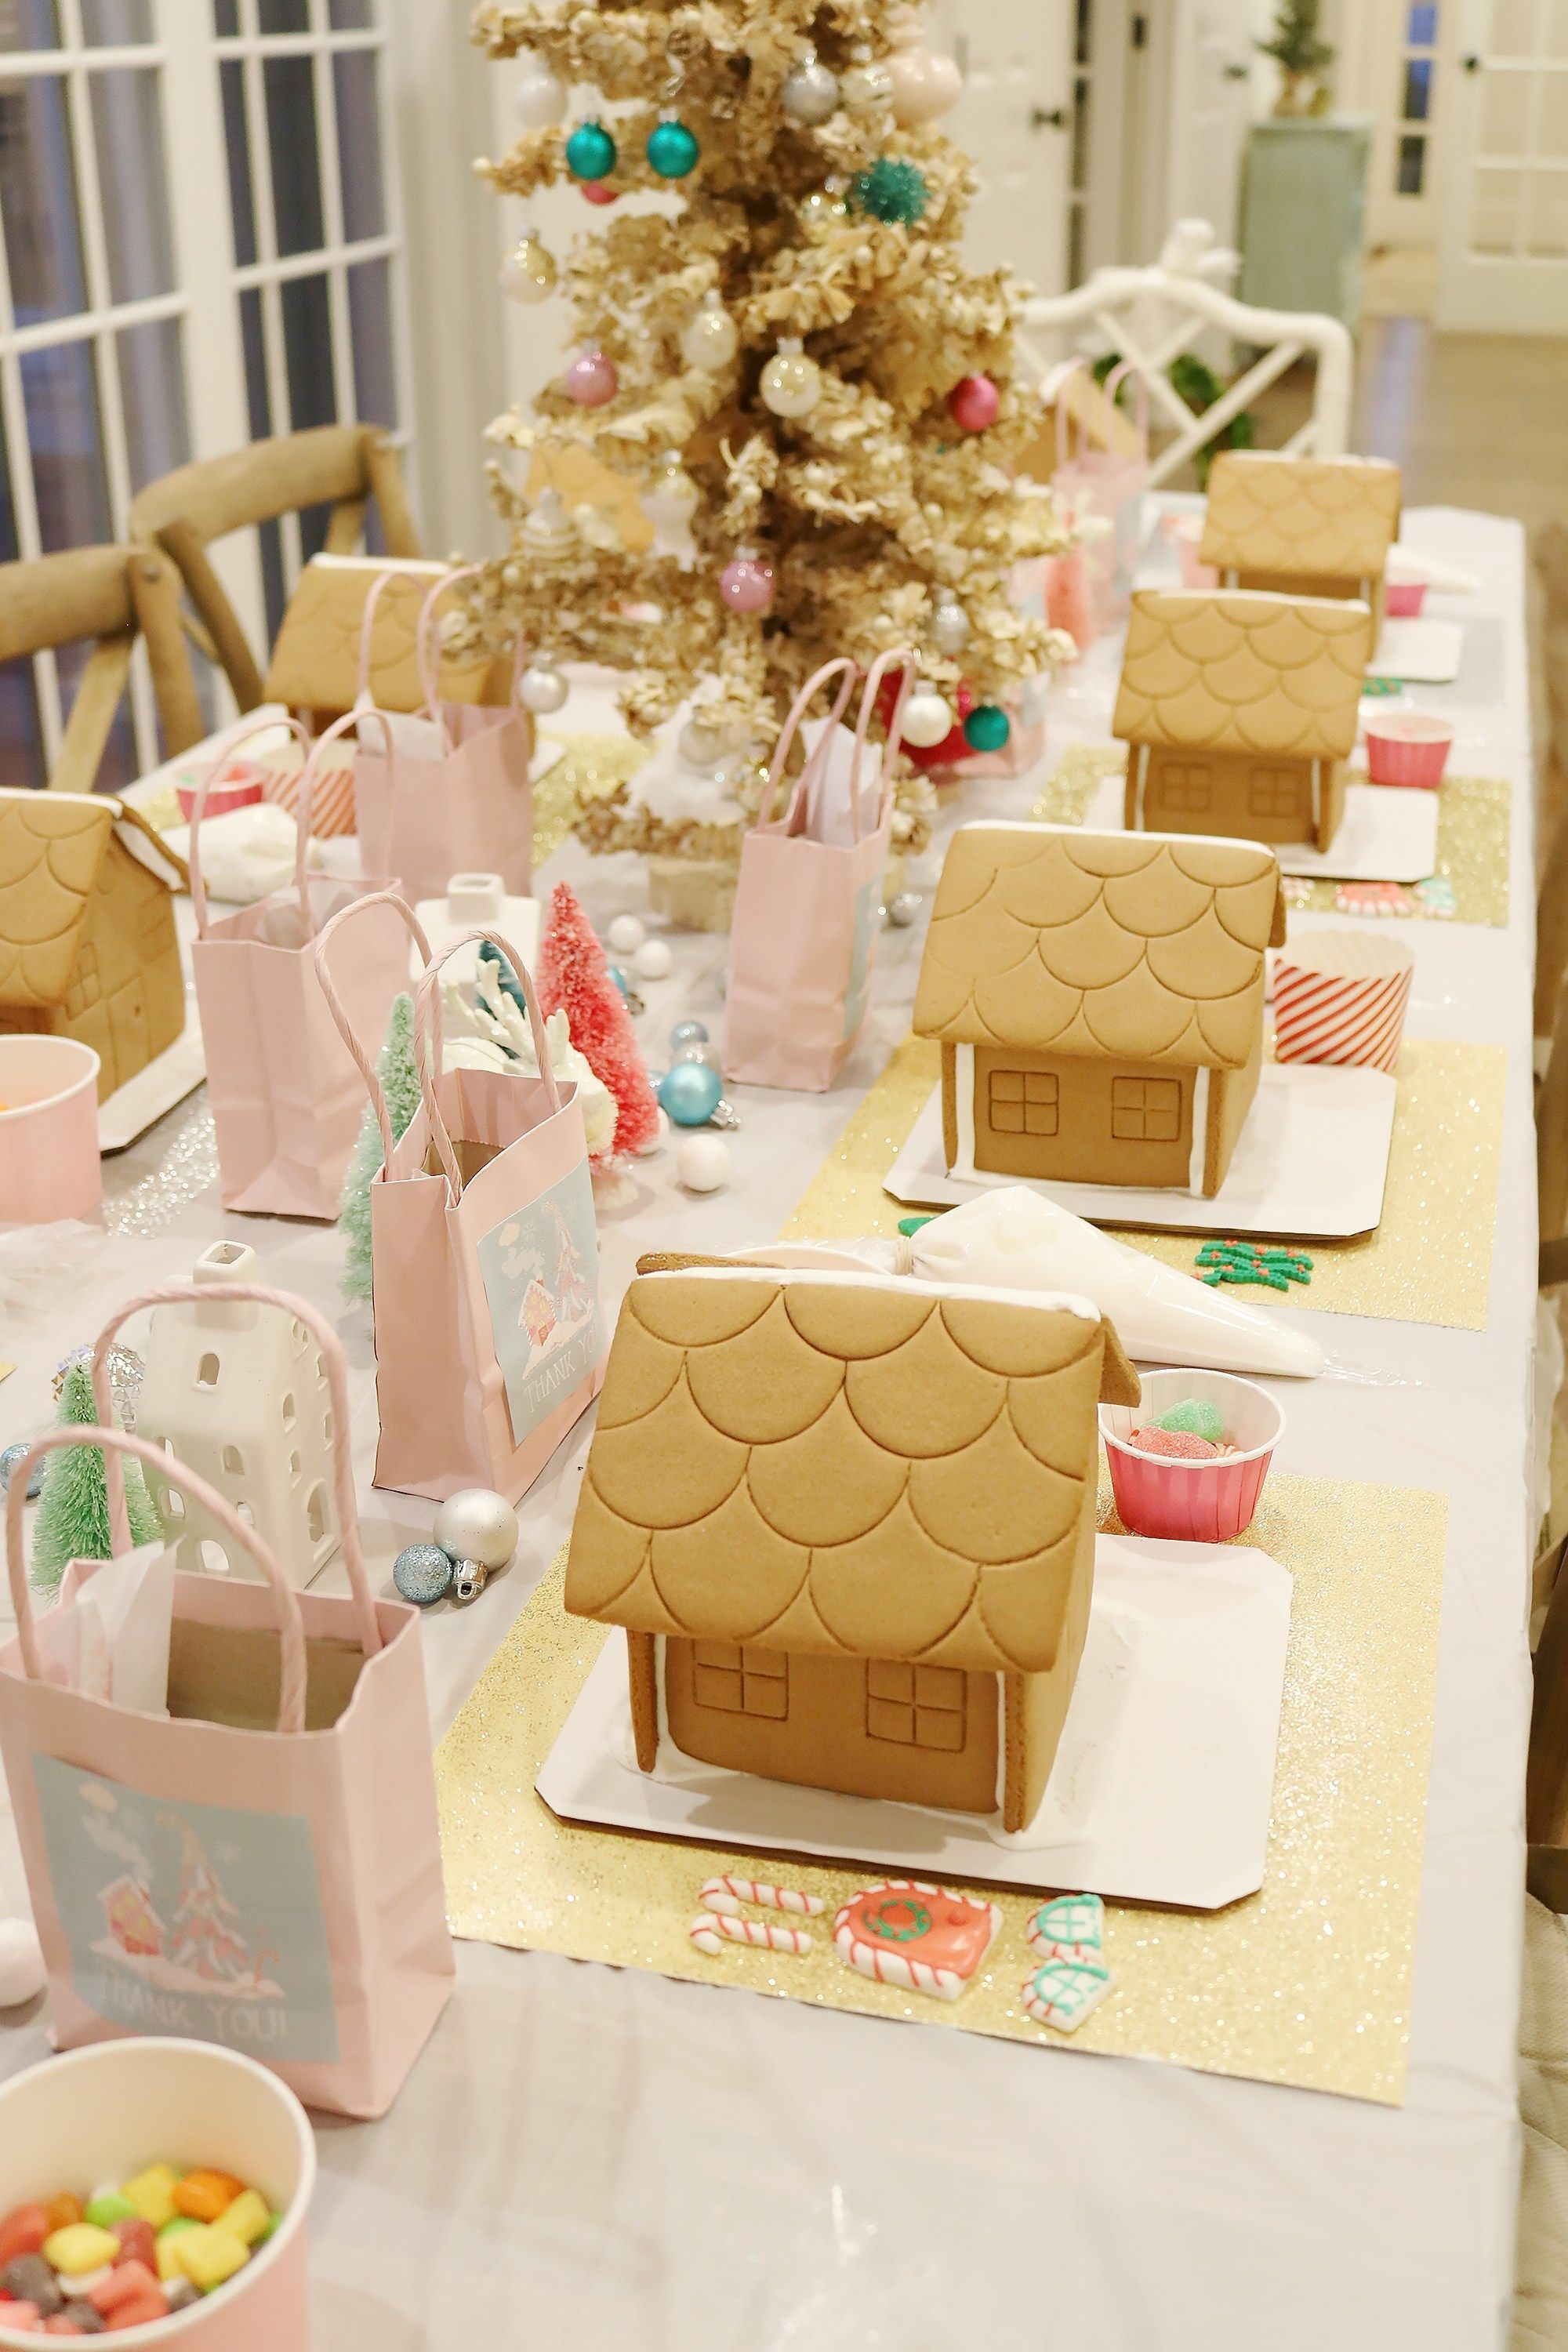 Fantastic Diy Gingerbread House Ideas For Your Décor To Try Asap 18